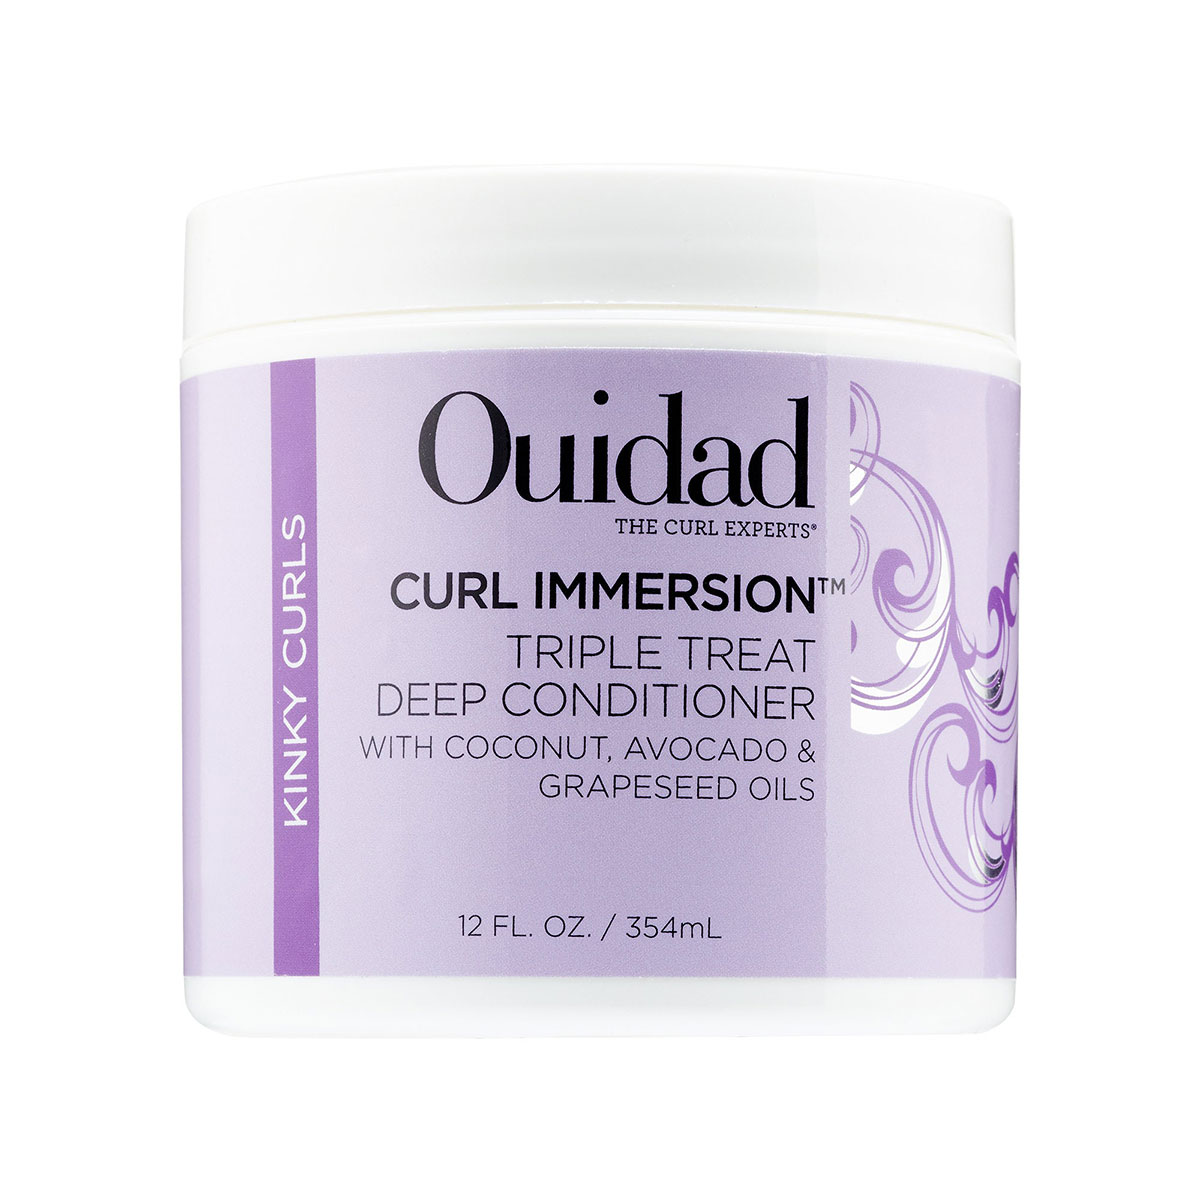 Ouidad Curl Immersion Triple Threat Deep Conditioner